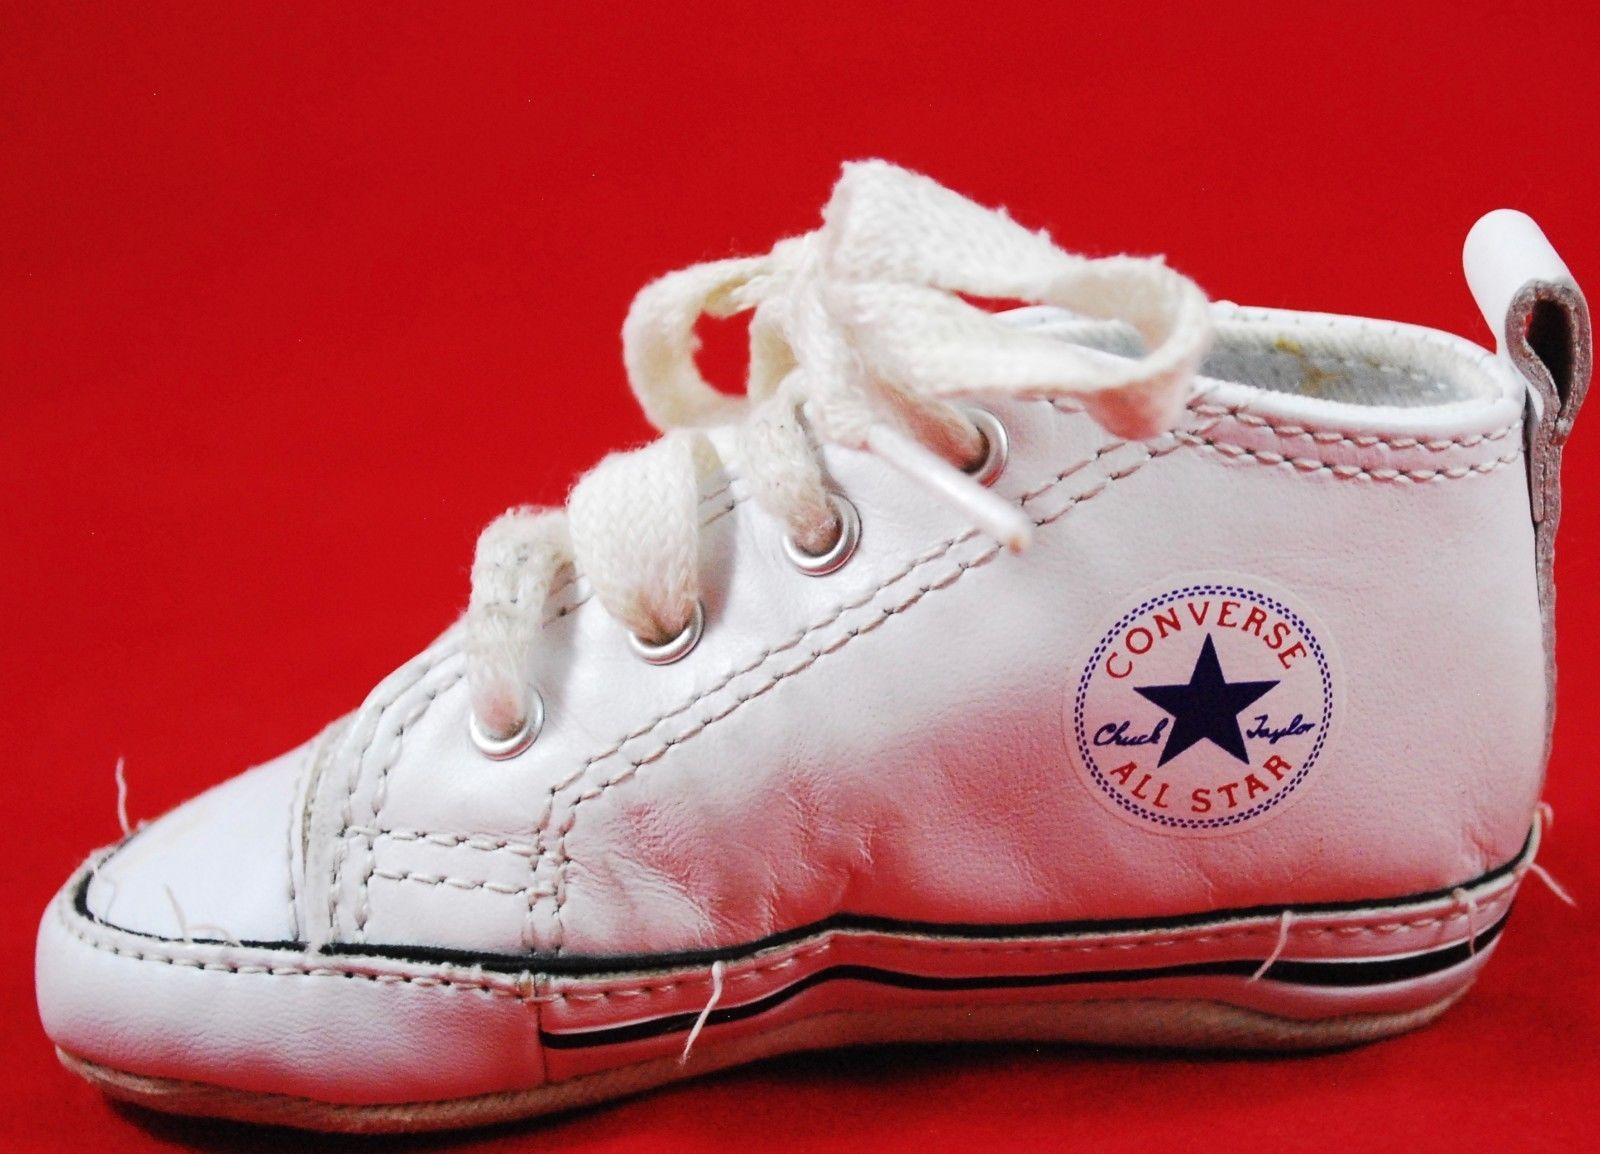 4aacd554d74822 Infant Baby CONVERSE Crib Shoes SIZE 3 White Vintage Style - Boy Girl -  Lace Up